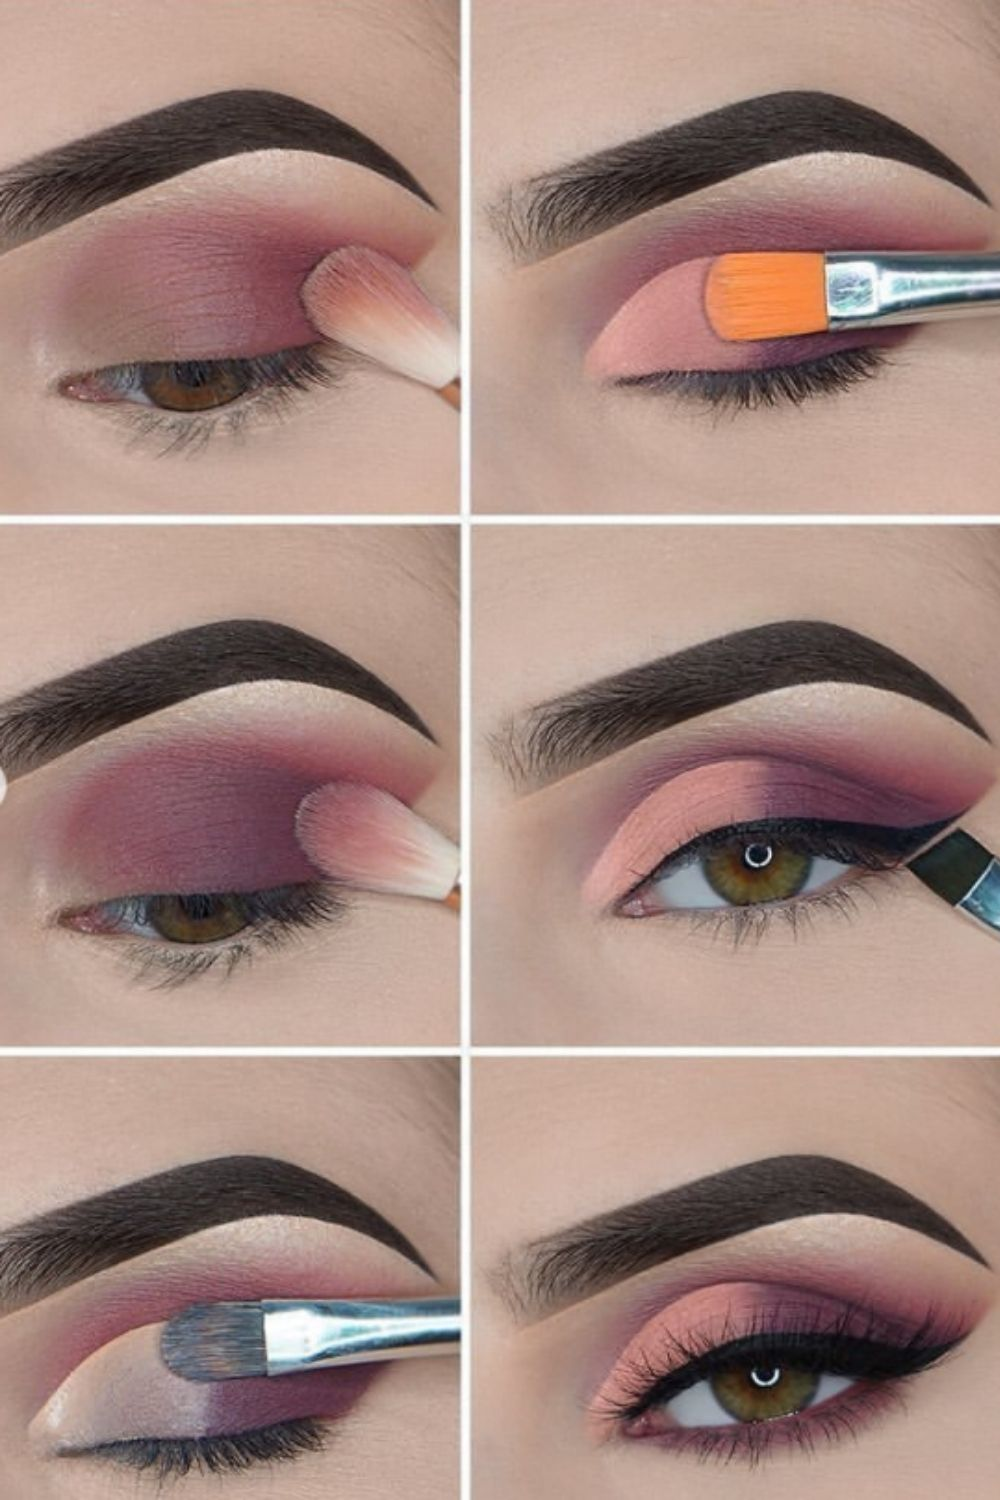 Tips For Eyeshadow Makeup Tutorial For Beginners!